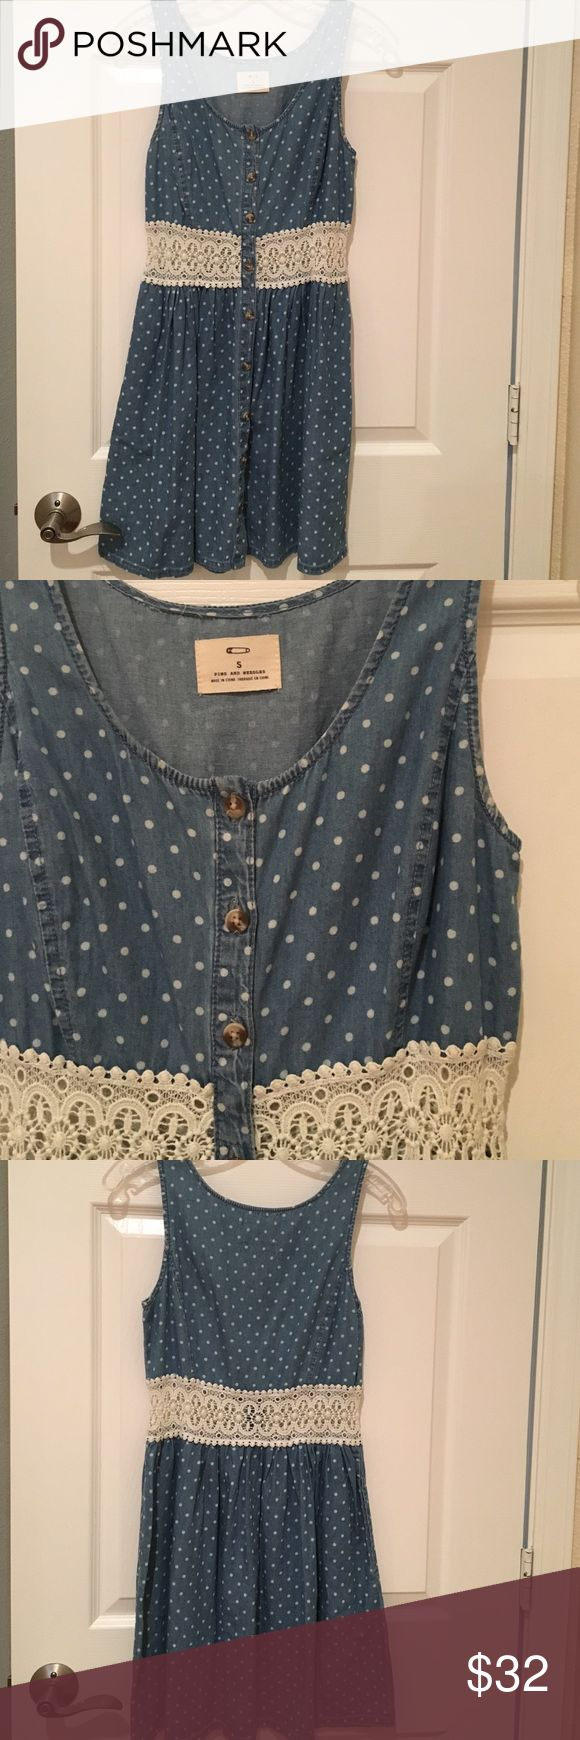 Dress Denim polka dot button up dress with crochet cut out. Size small once once to a country concert looks adorable with cow boy boots! Dresses